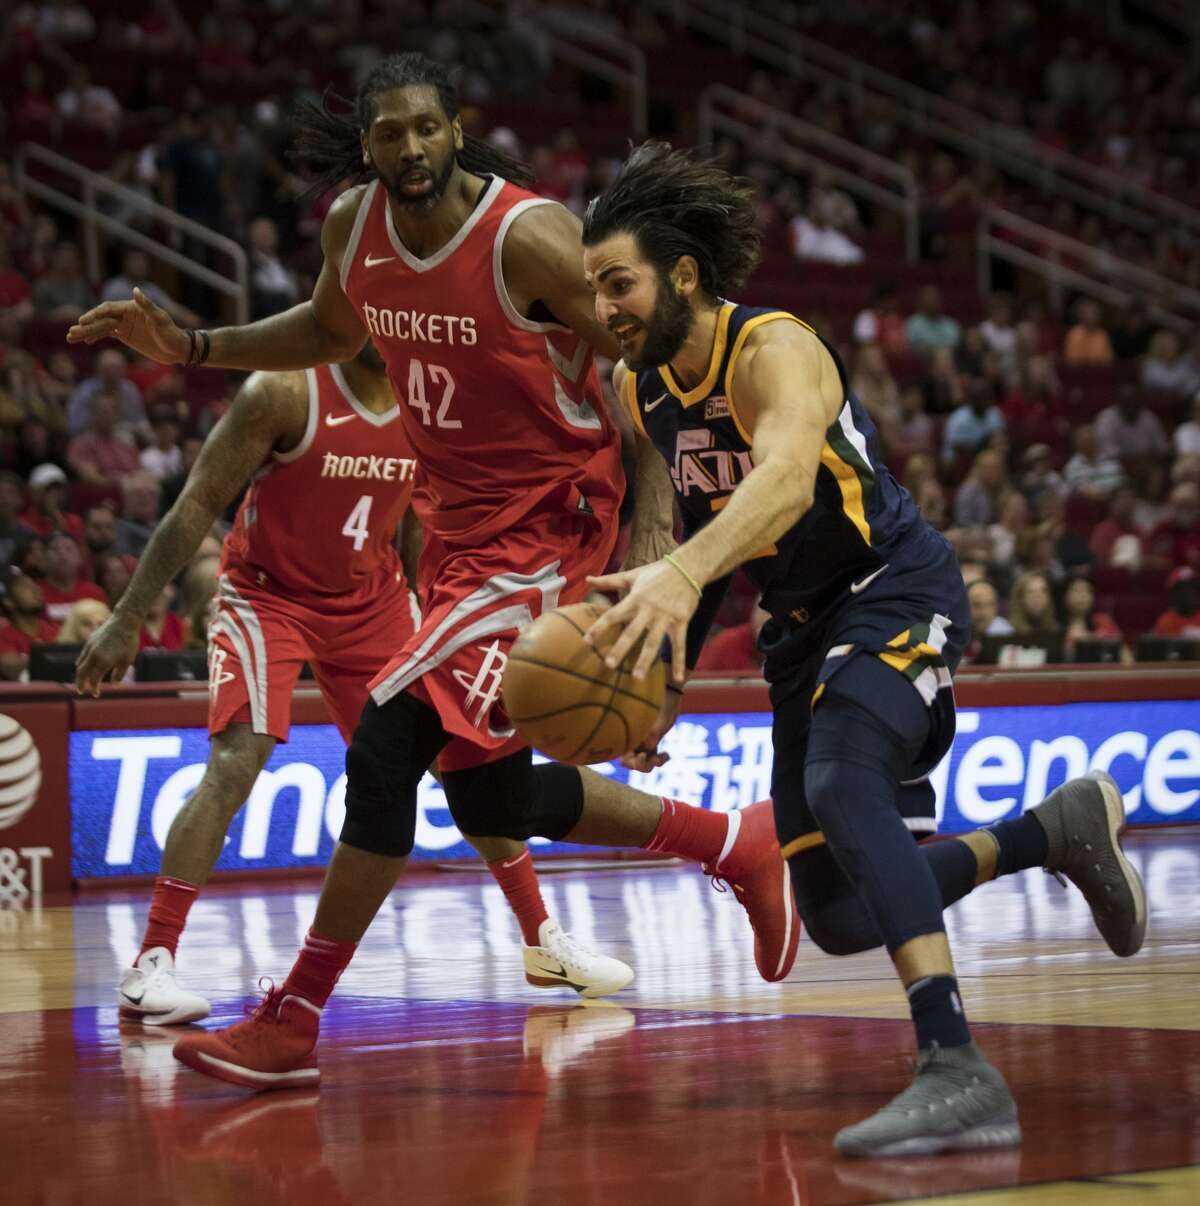 Utah Jazz guard Ricky Rubio (3) is defended by Houston Rockets center Nene Hilario (42) during the first half of the game between the Rockets and the Utah Jazz, Sunday, Nov. 5, 2017, at the Toyota Center in Houston. ( Marie D. De Jesus / Houston Chronicle )